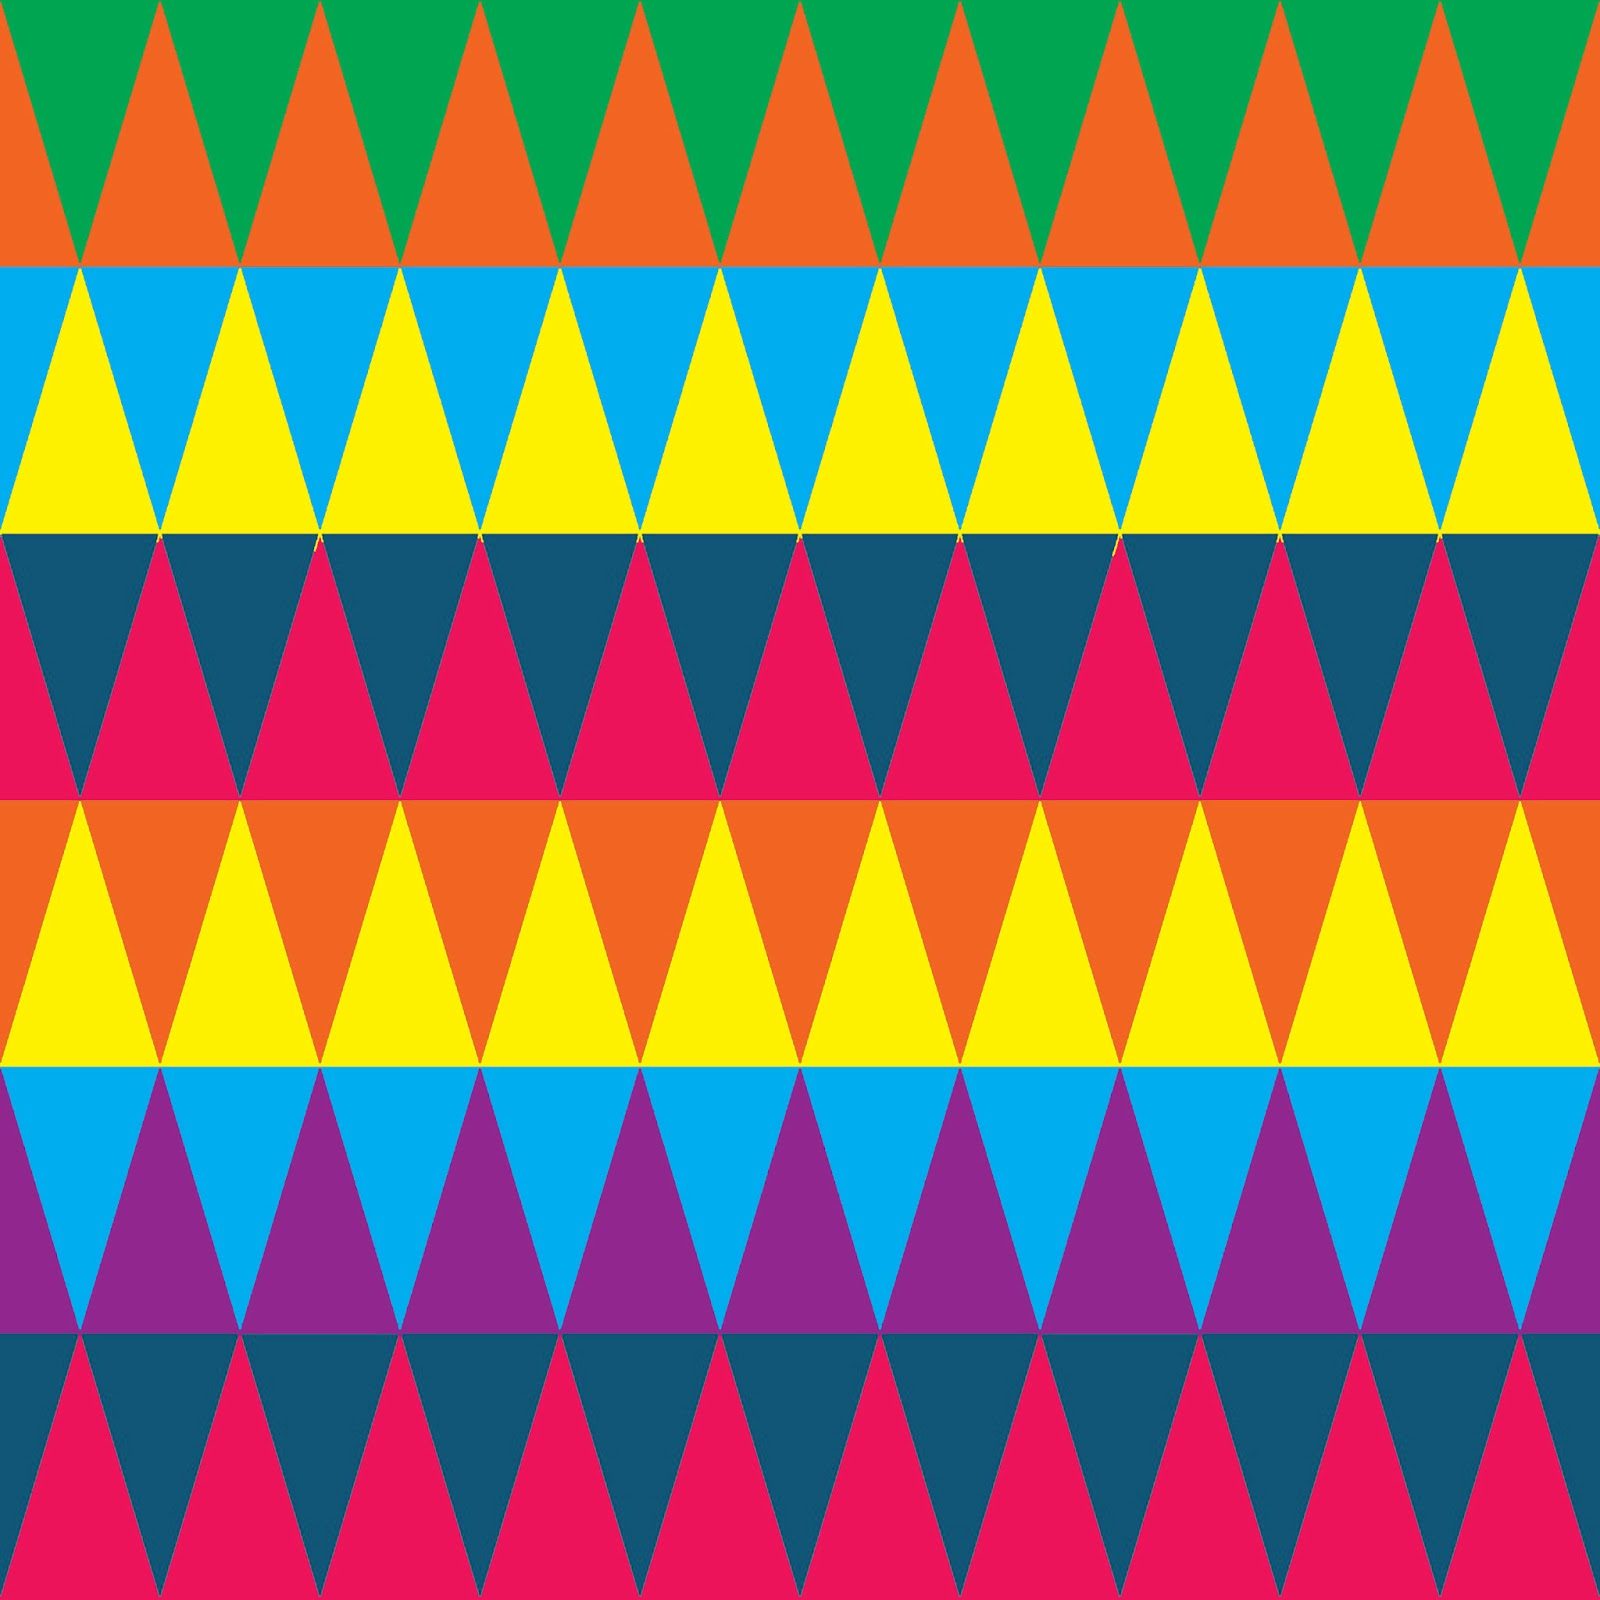 Doodlecraft Triangles 15 Colorful Geometric background FREEBIES 1600x1600